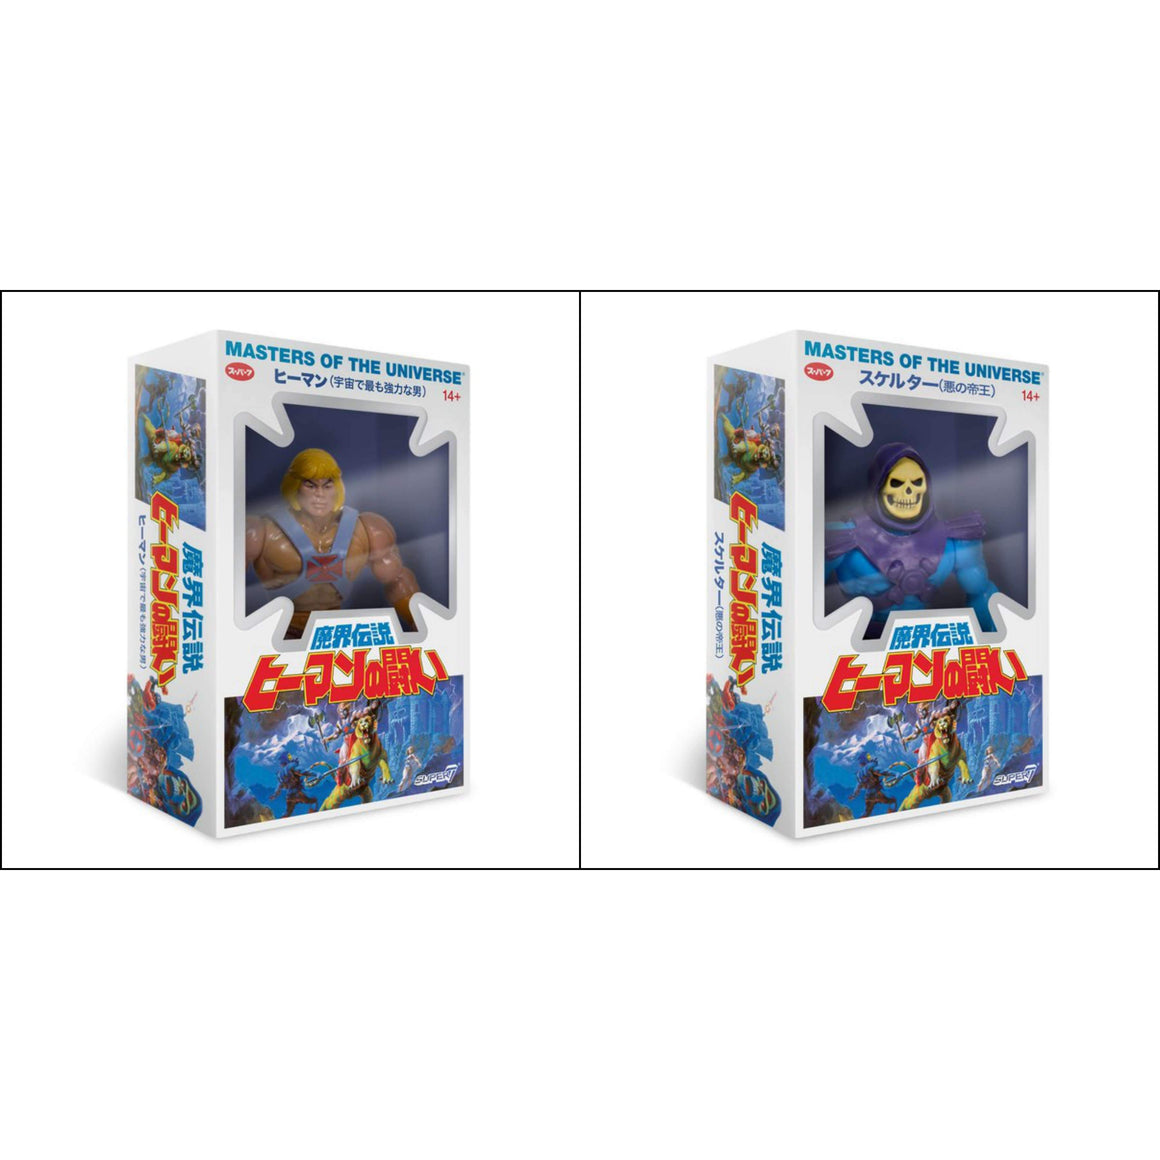 Masters of the Universe Vintage Wave 4 Set of 2 Japanese Box Figures (He-Man & Skeletor) - Q2 2019